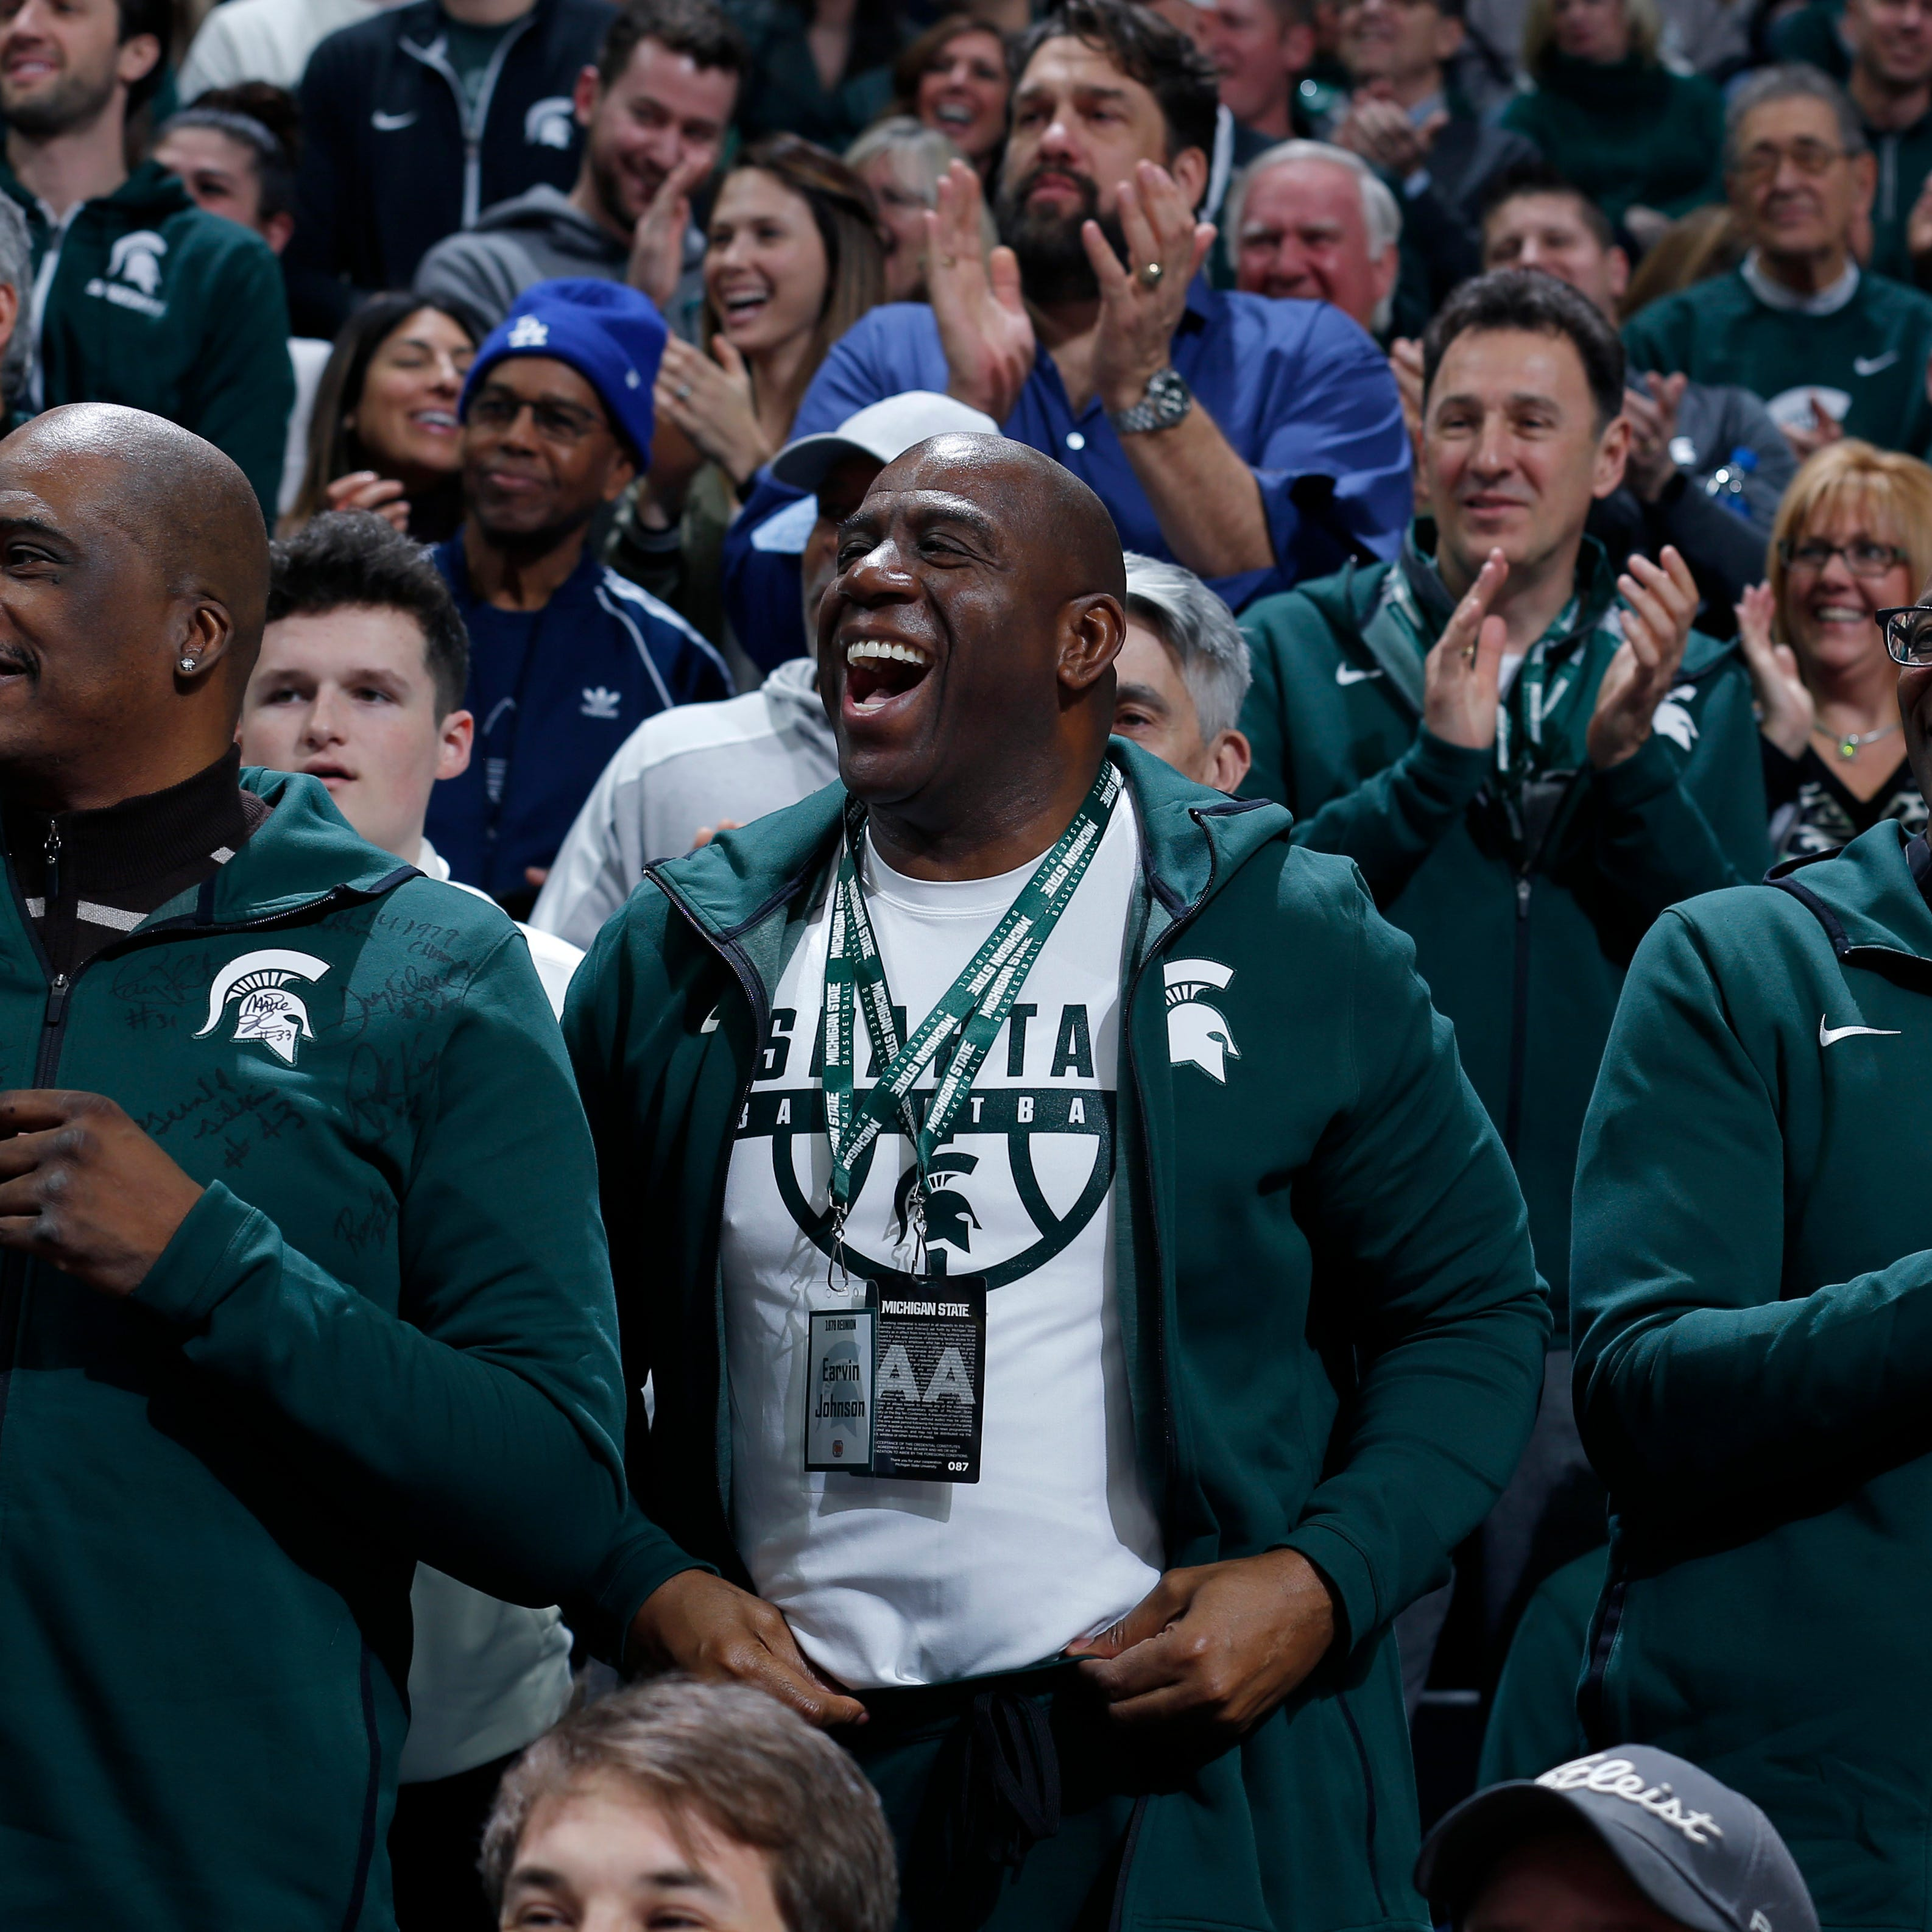 Michigan State basketball gets back to basics with Magic Johnson in crowd